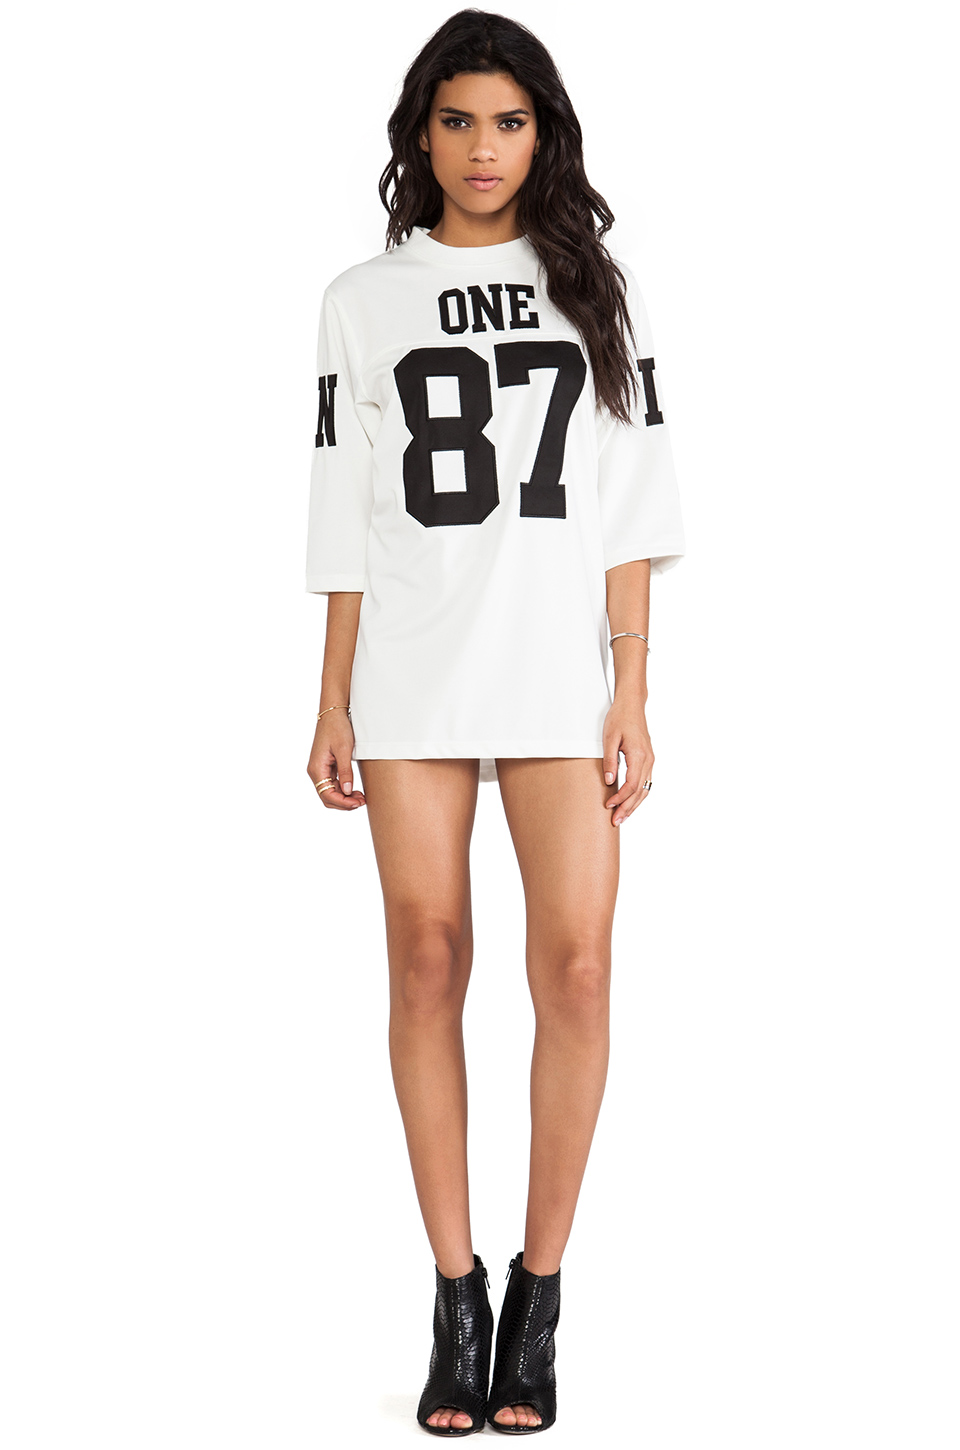 Unif 187 jersey dress in white